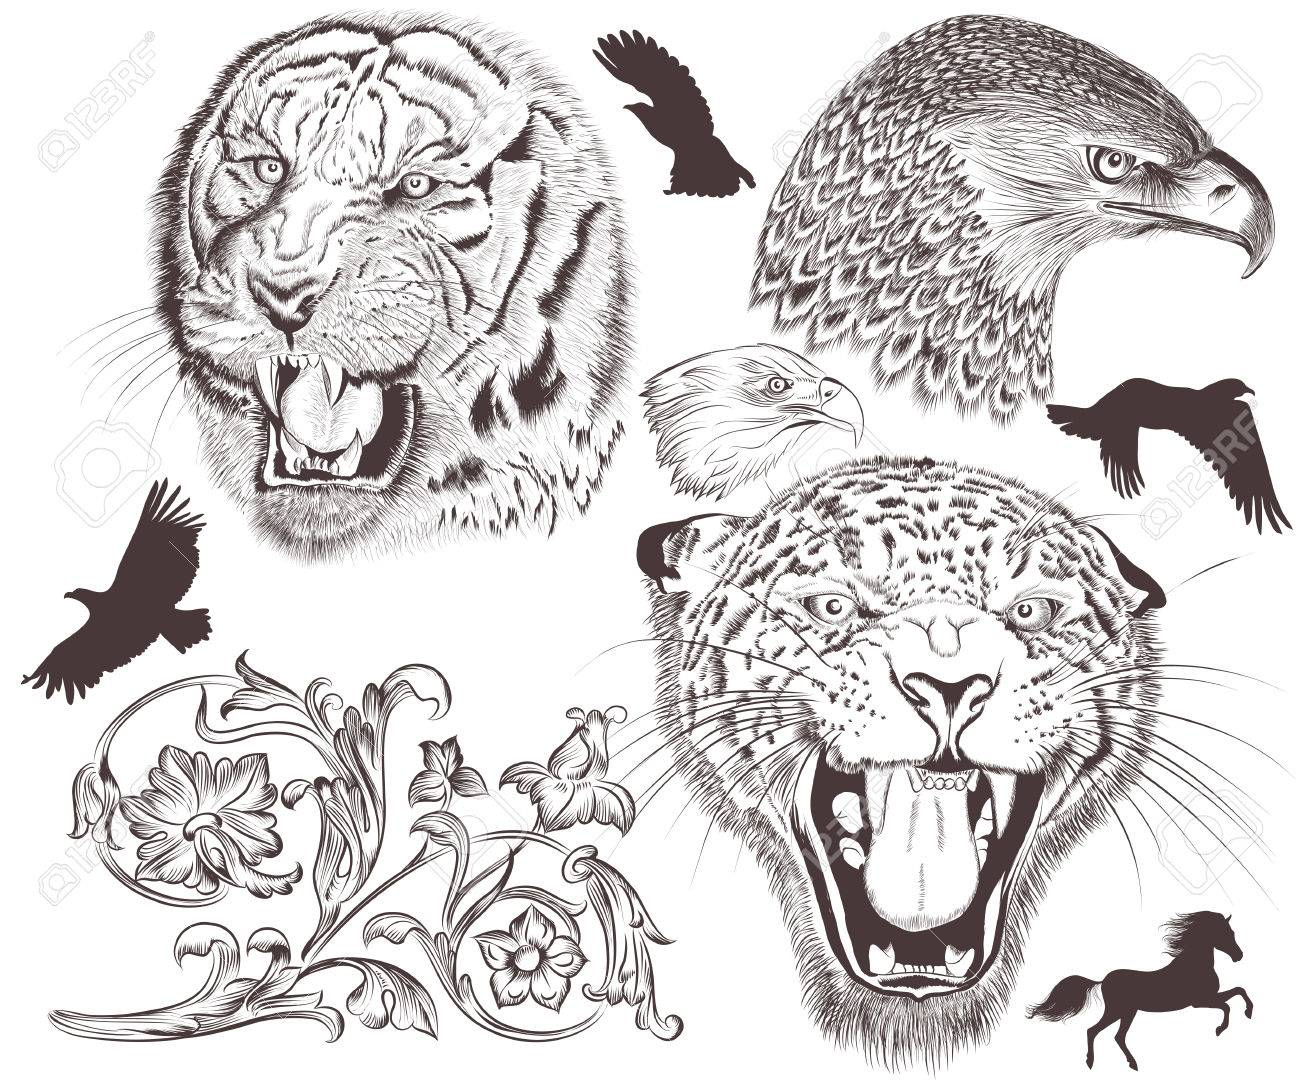 Uncategorized Drawn Pictures Of Animals collection of vector hand drawn animals royalty free cliparts stock 27452021